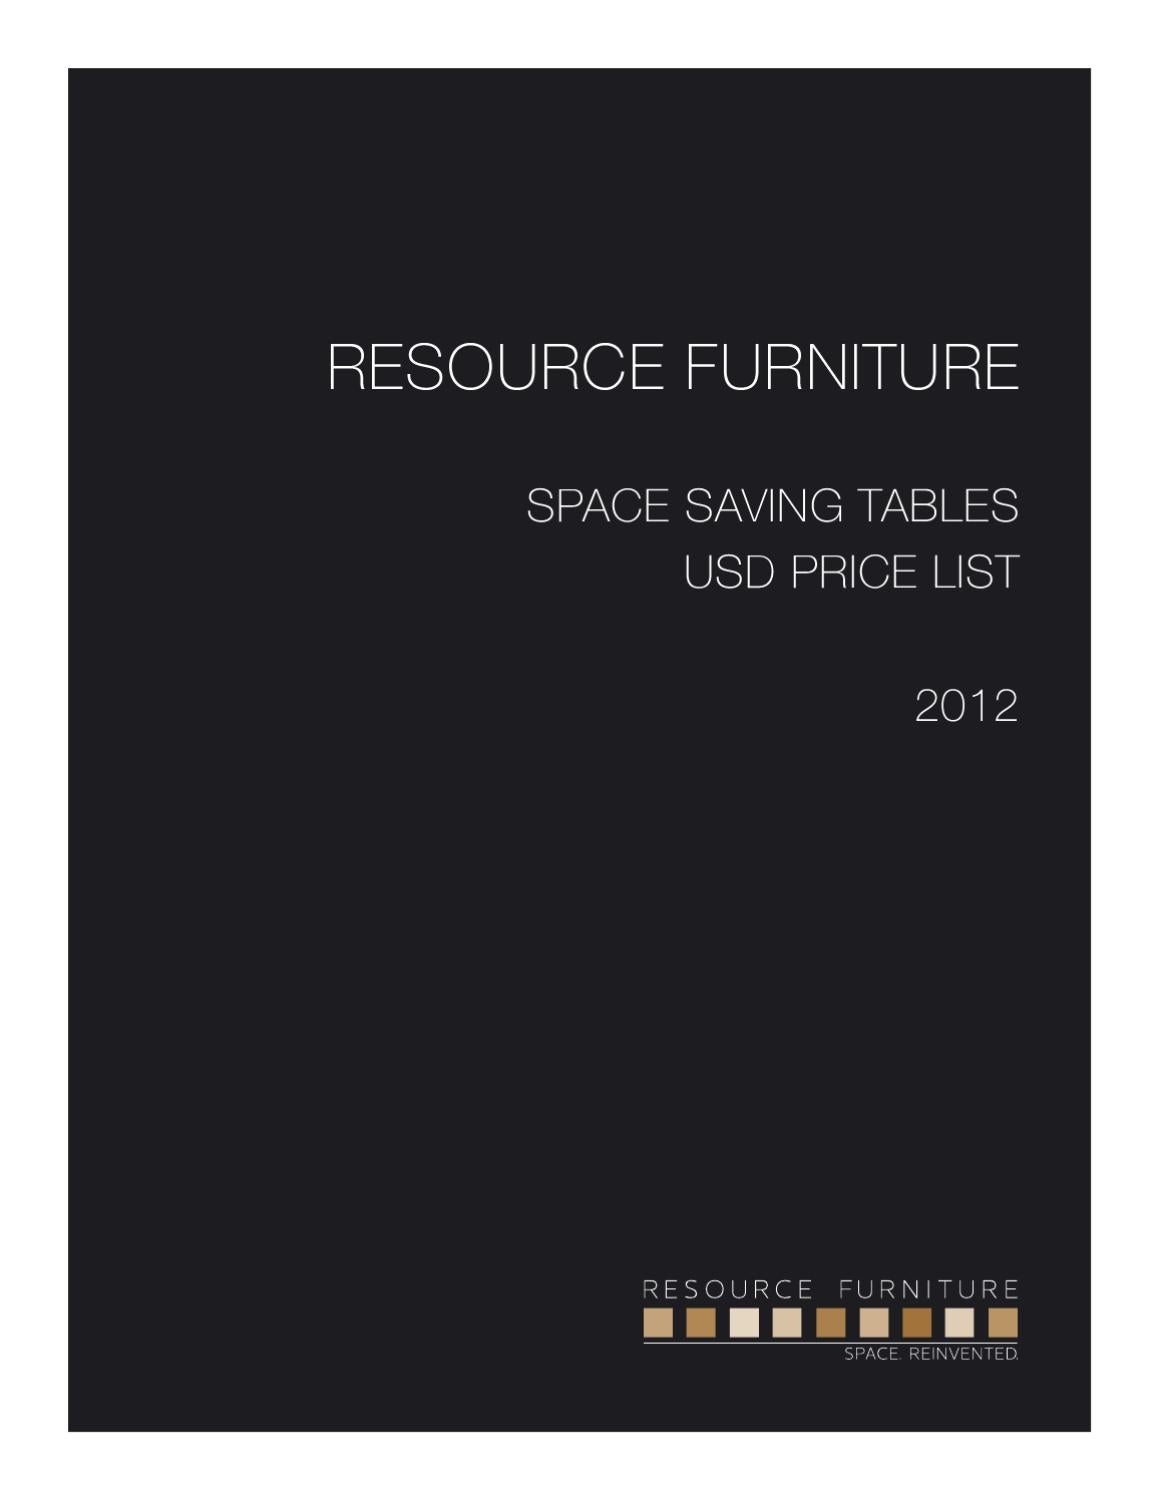 E Saving Tables Pricelist 27242 By Resource Furniture Issuu